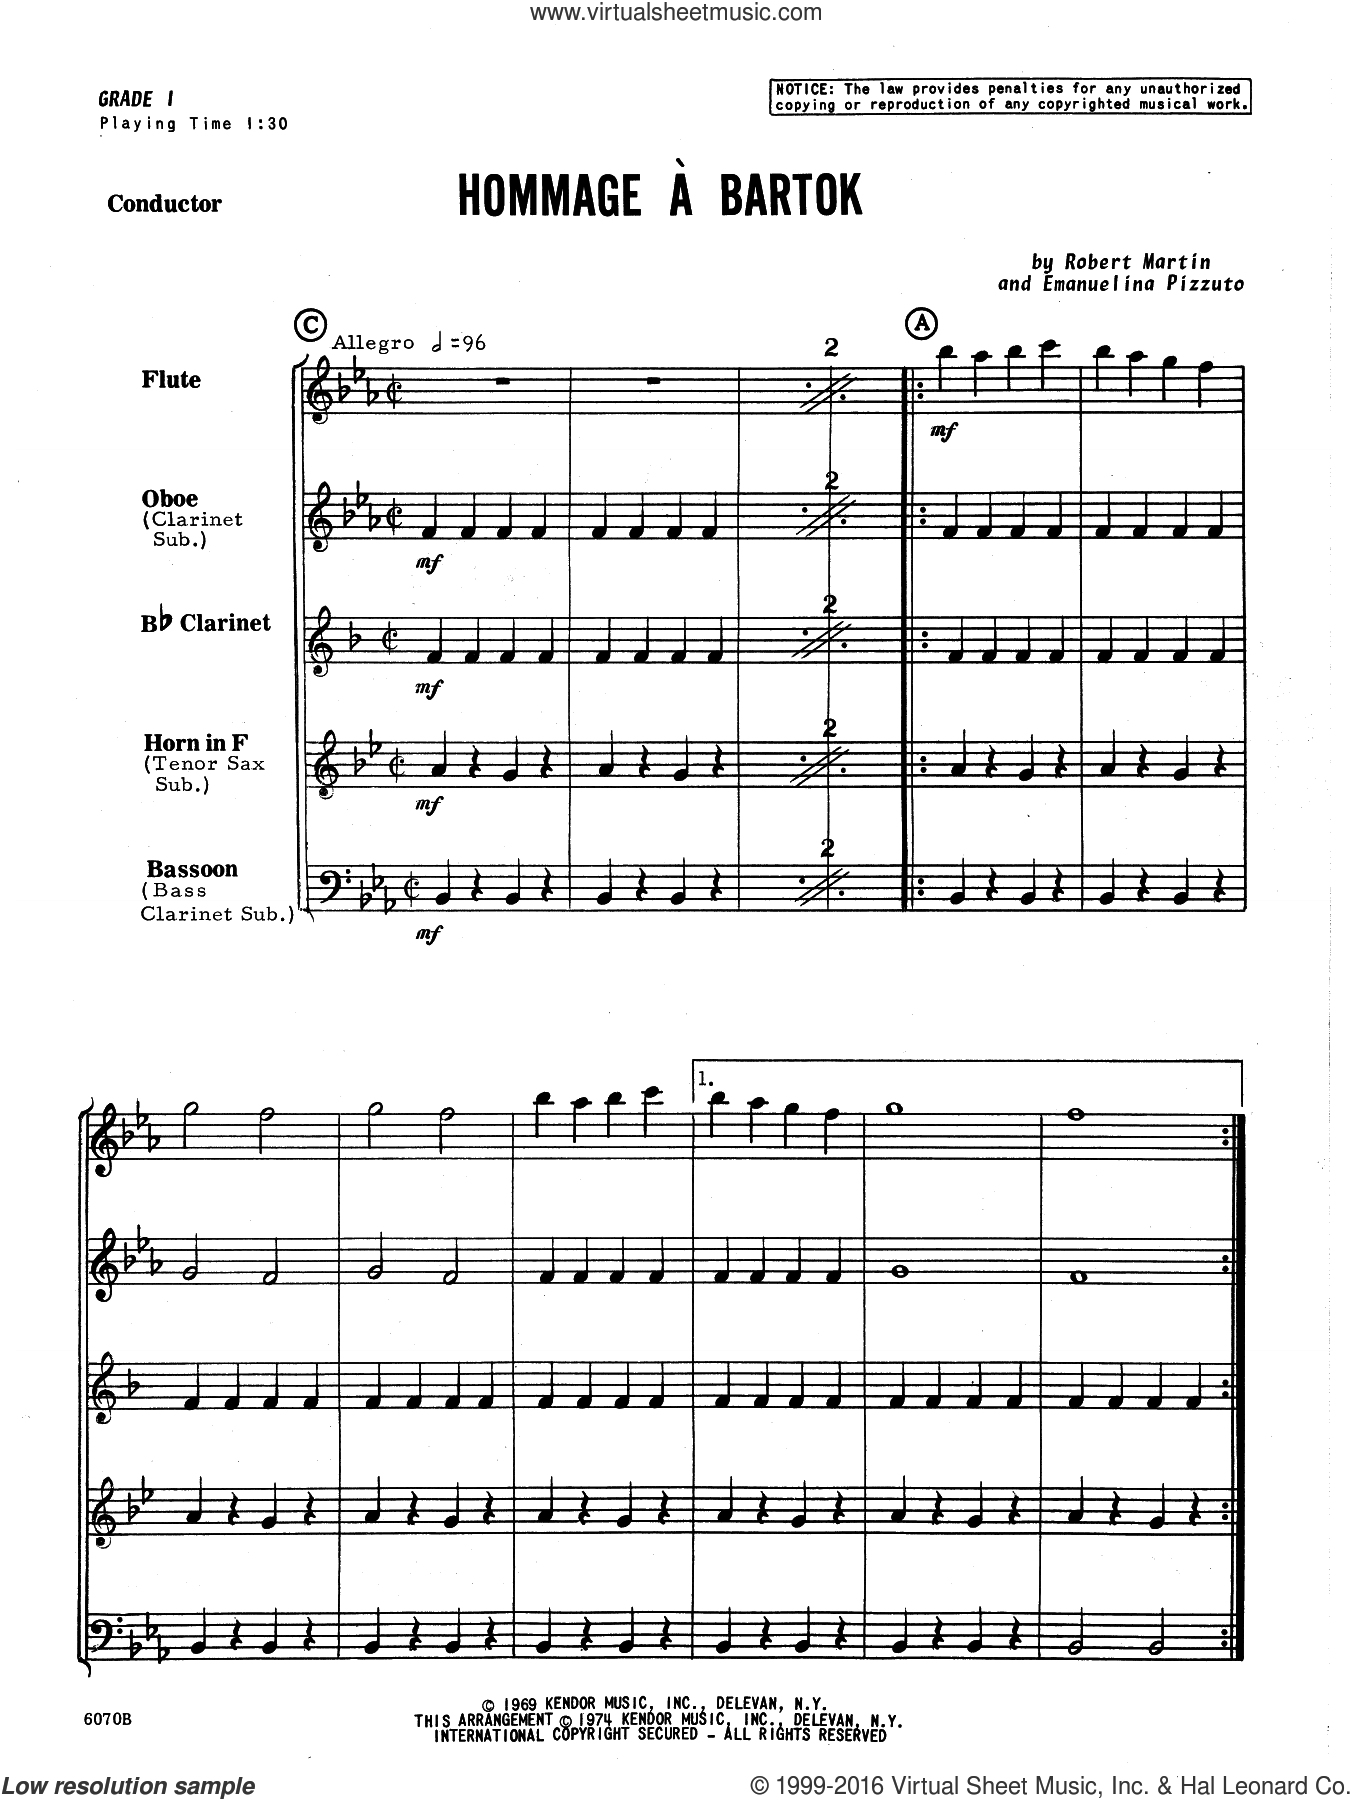 Hommage A Bartok (COMPLETE) sheet music for wind quintet by Pizzuto